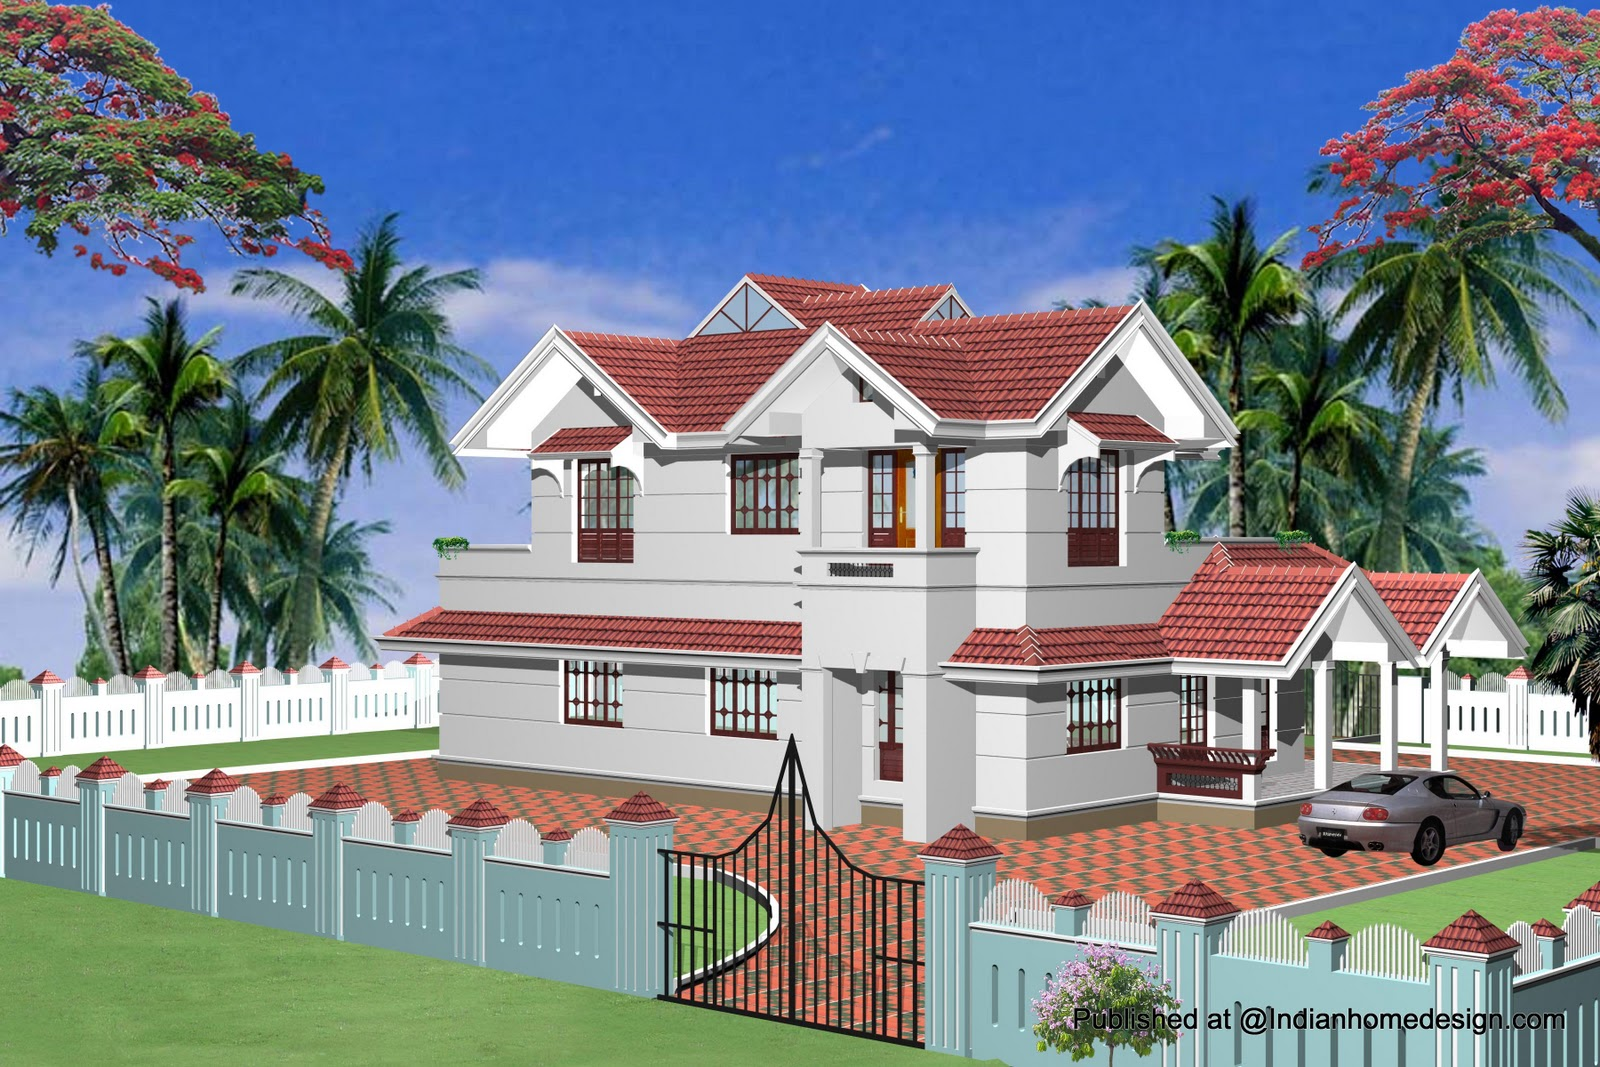 Architectural House Plans India Omahdesigns Net